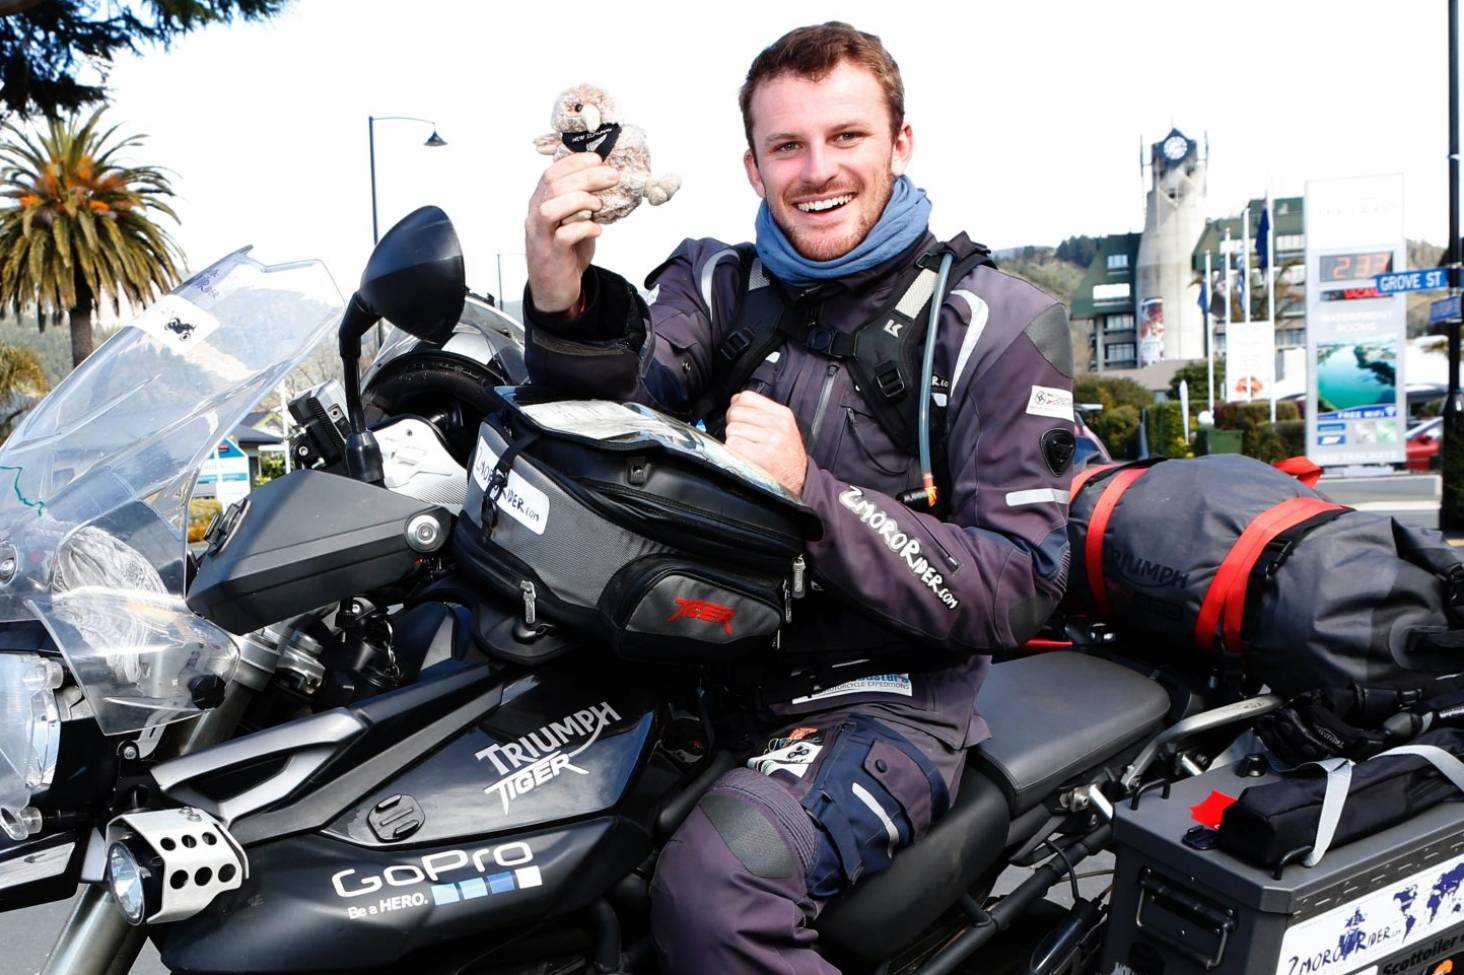 Round-the-world biker on ride of his life | Stuff co nz